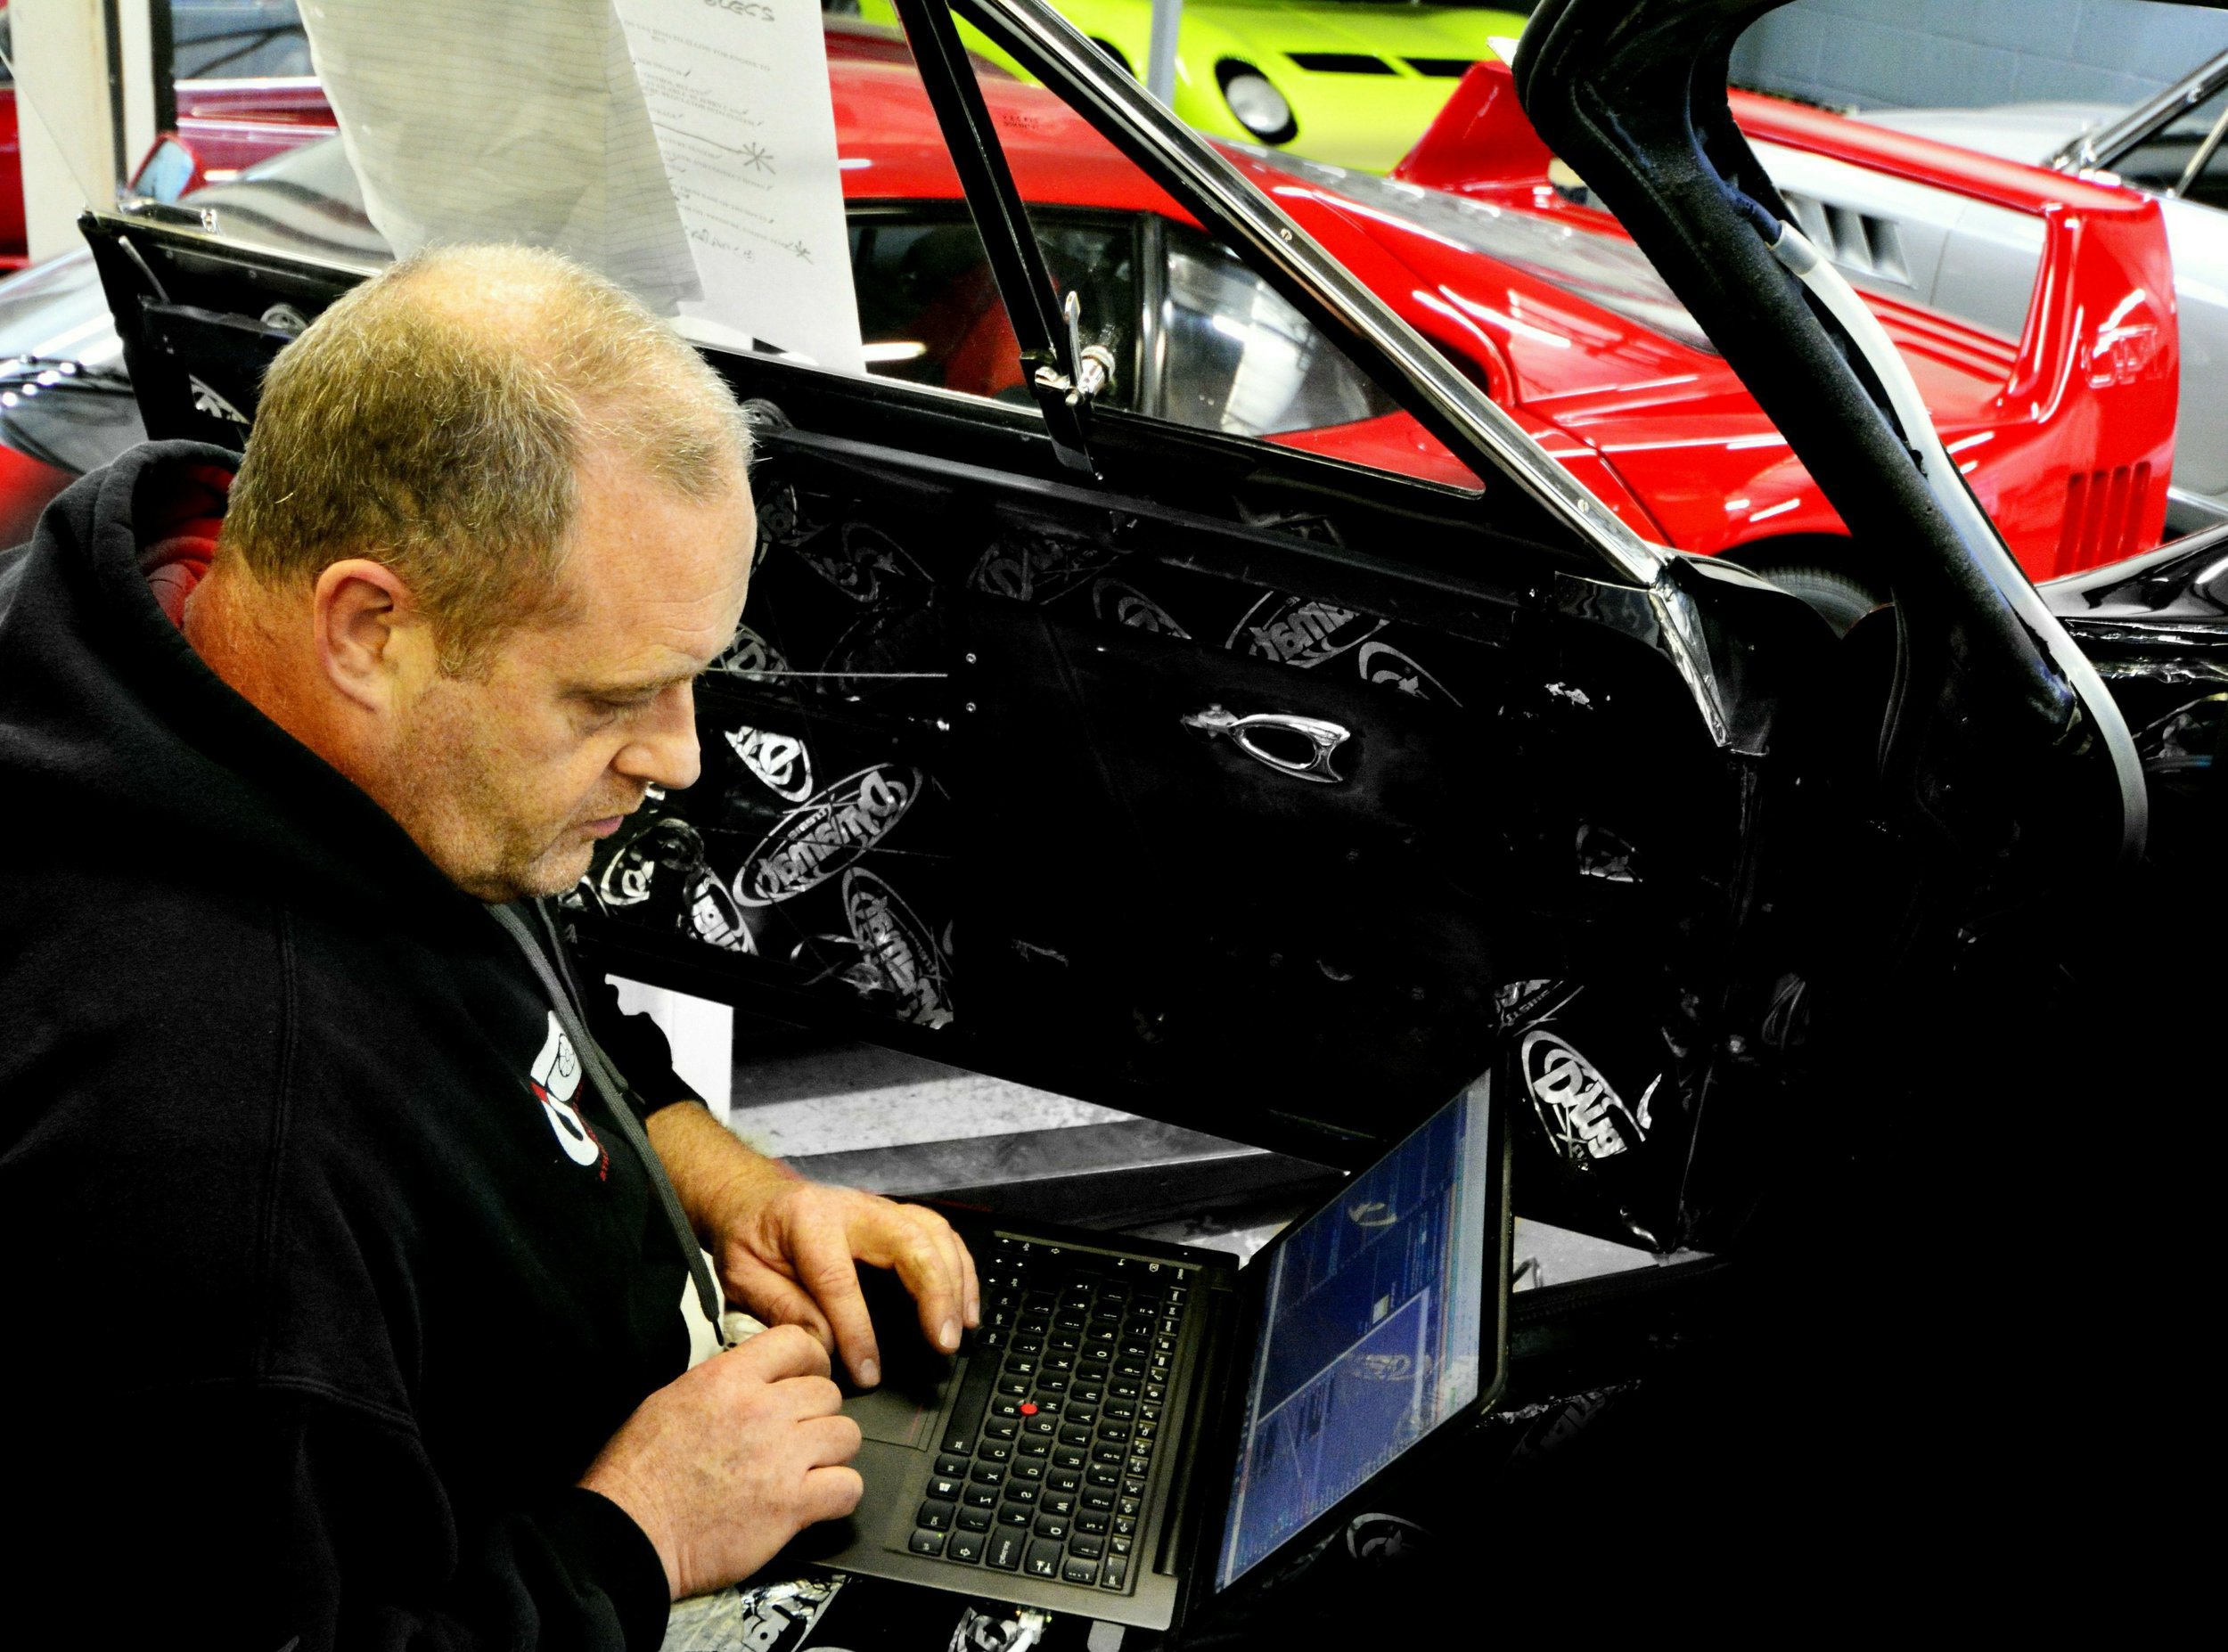 A software engineer fine tuning MoTec engine management software on a Ferrari V8 engine which has been upgraded in house by Moto Technique to produce 400bhp. The results is a smooth power delivery in all conditions which is totally reliable.